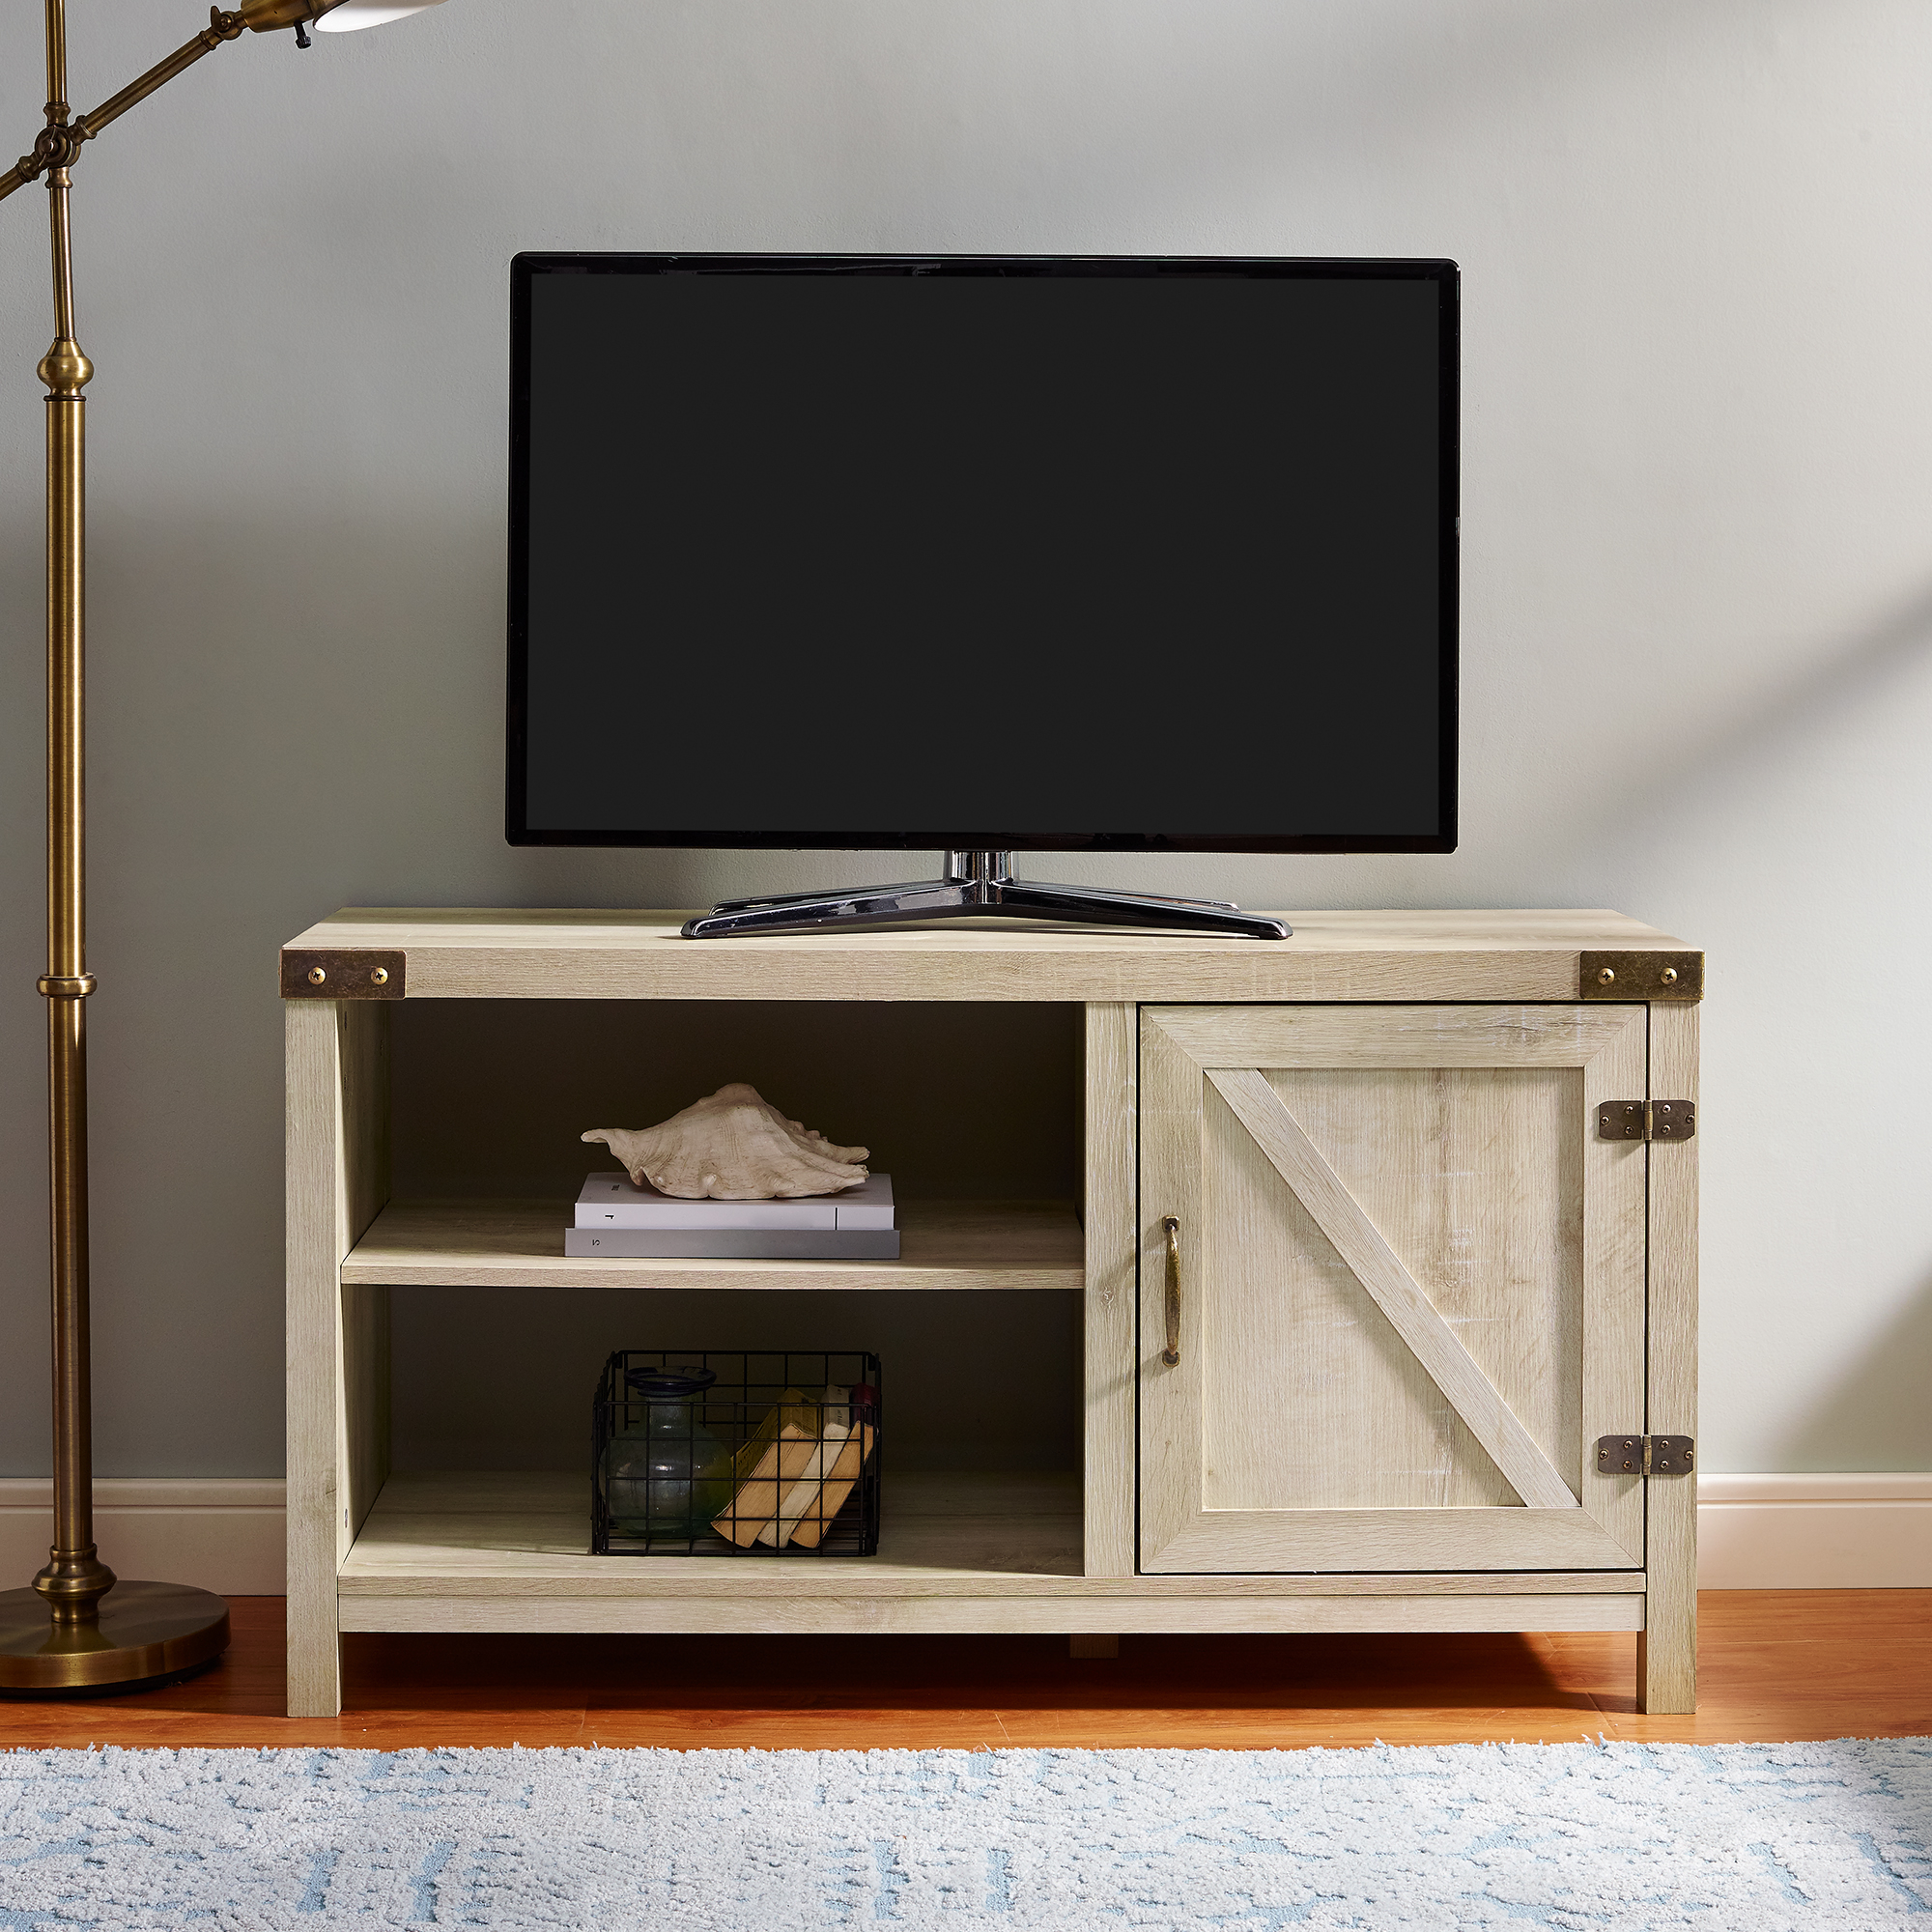 """Woven Paths Farmhouse Barn Door Tv Stand For Tvs Up To 50 In Current Leonid Tv Stands For Tvs Up To 50"""" (View 1 of 25)"""